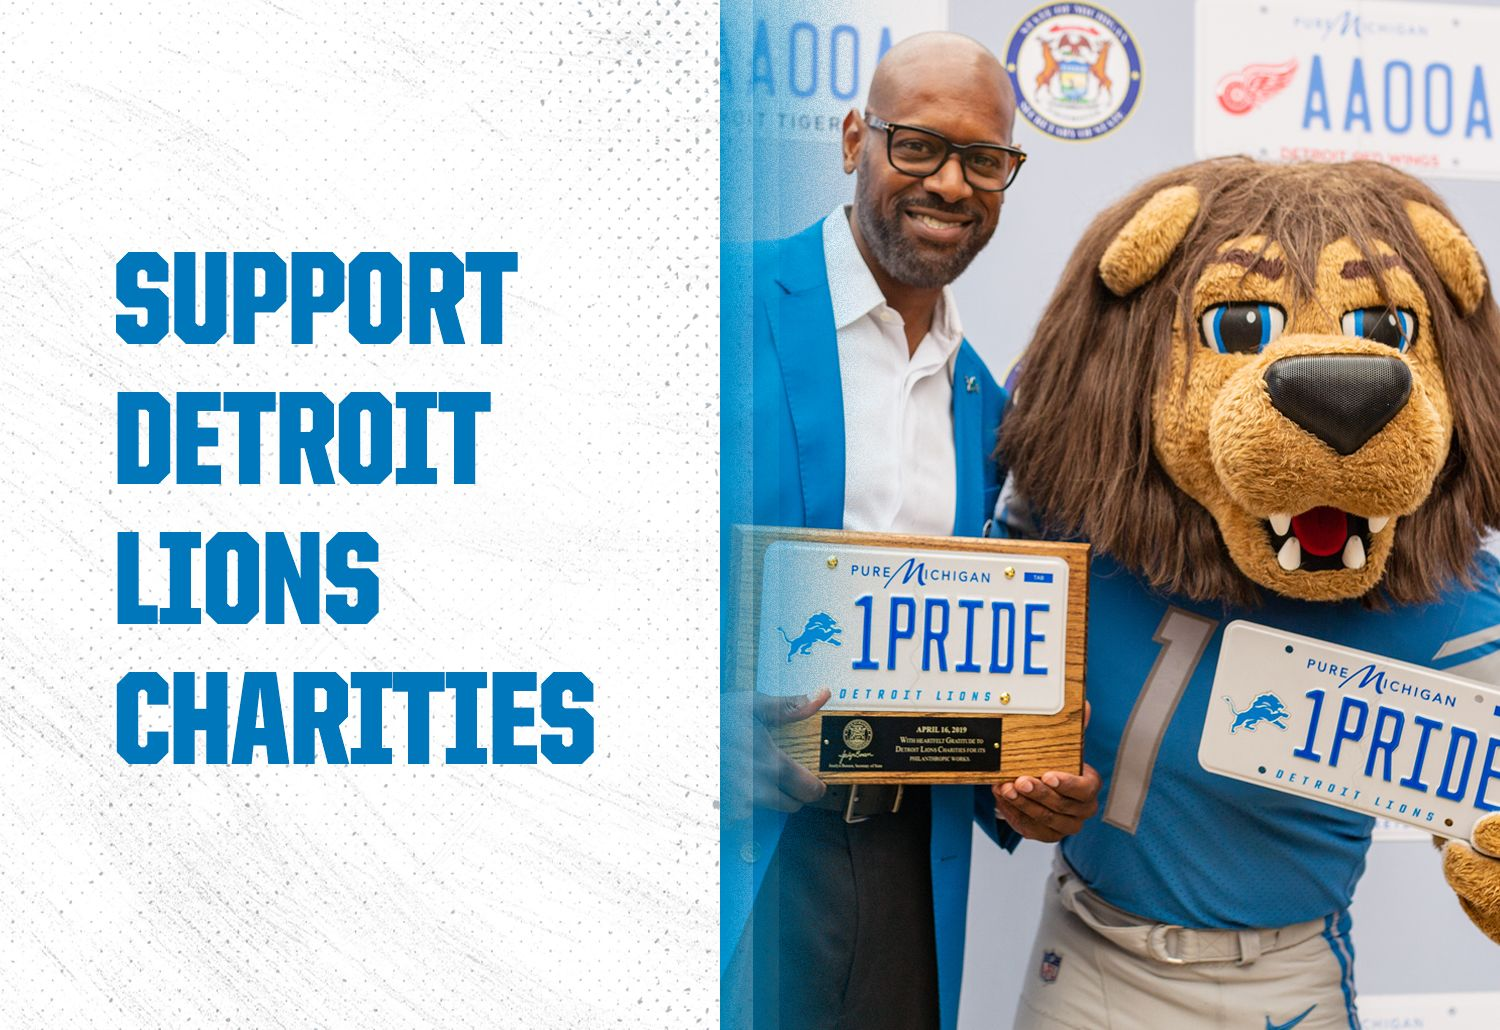 support-detroit-lions-charities-homepage-tile